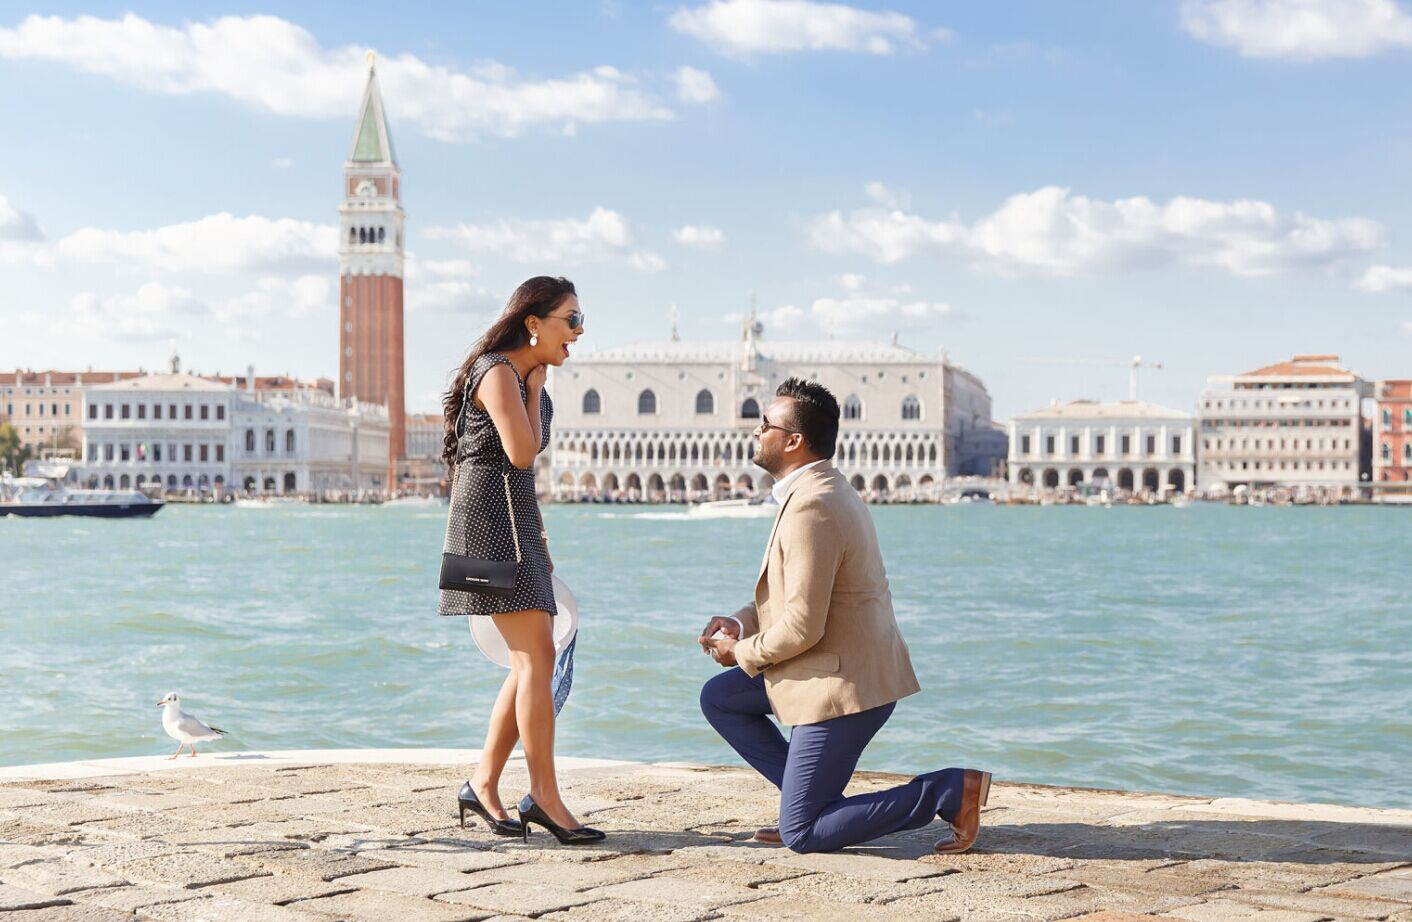 How to propose to a girl romantically